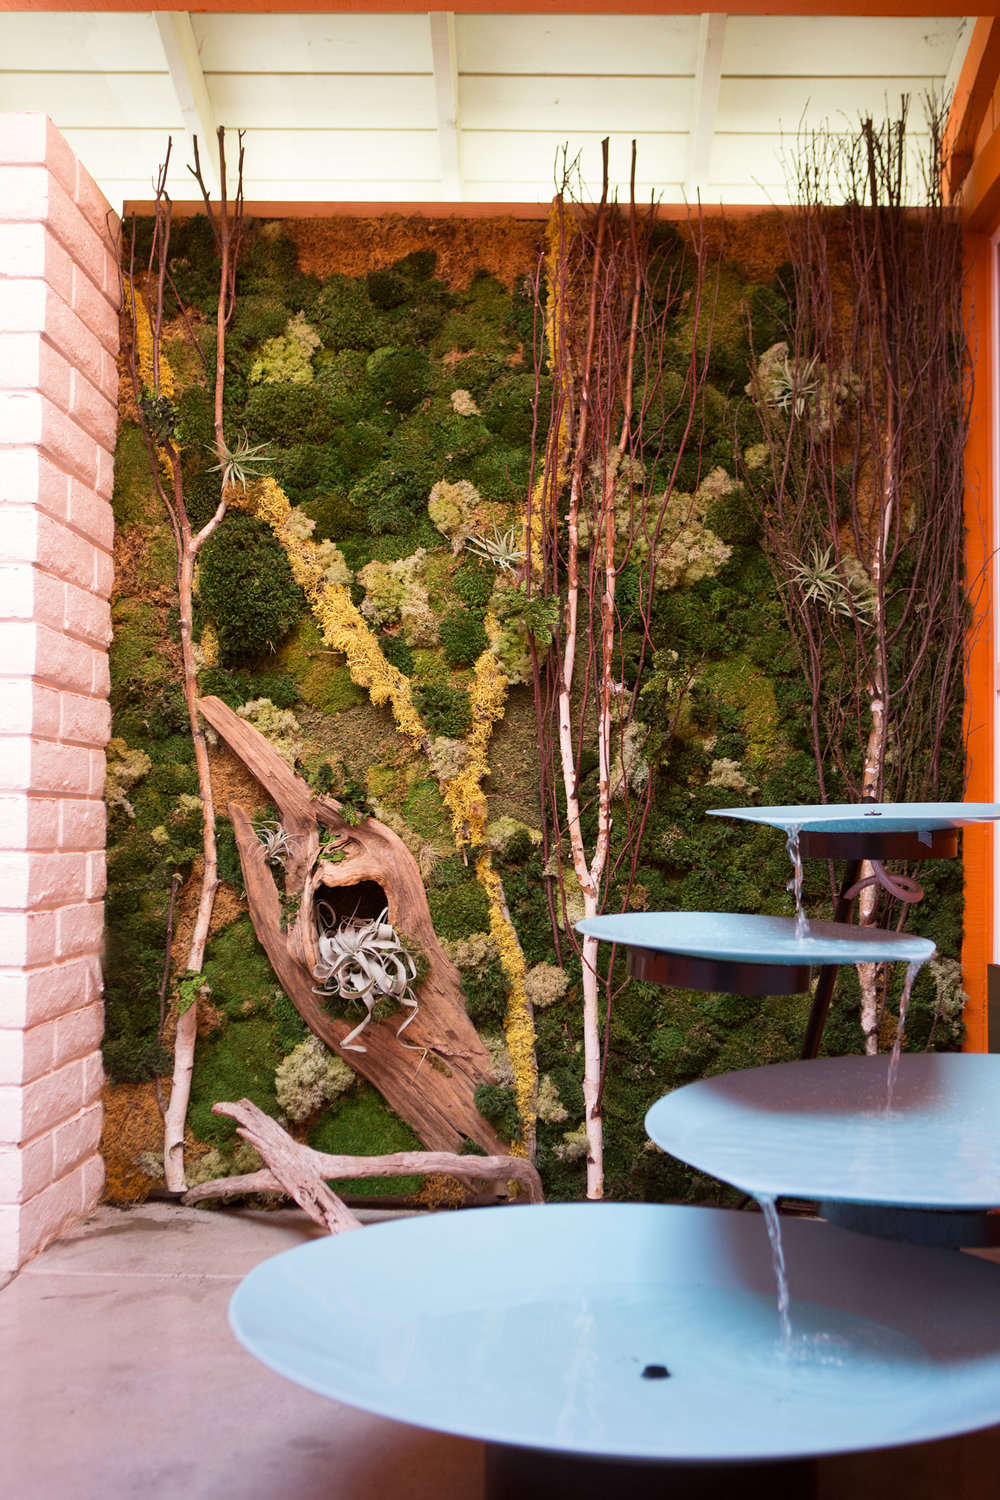 vertical garden art moss and driftwood coastal living outdoor decor.jpg